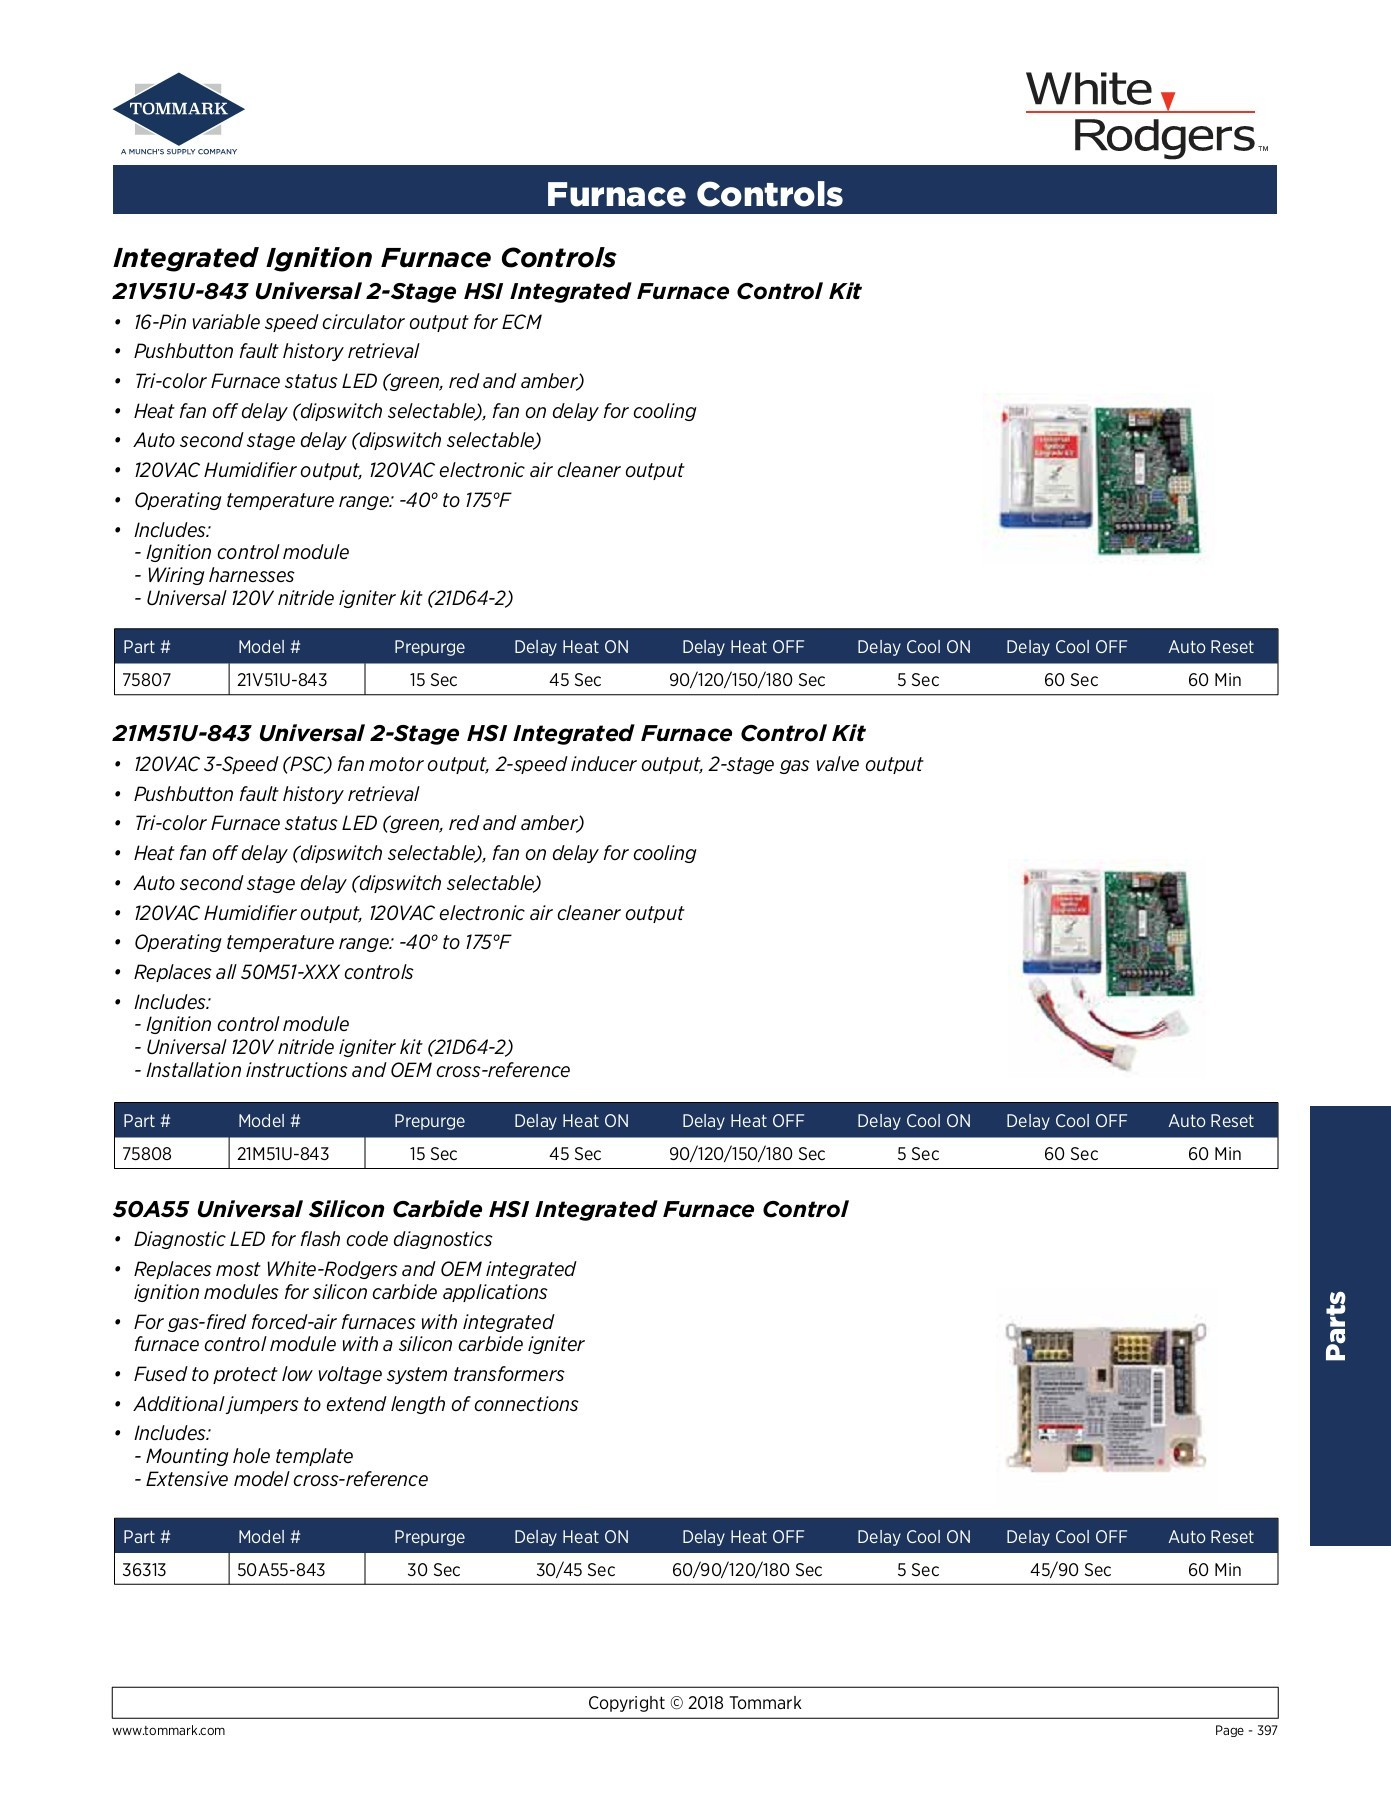 hight resolution of 06708 1118 tommark trane catalog pages 401 450 text version fliphtml5